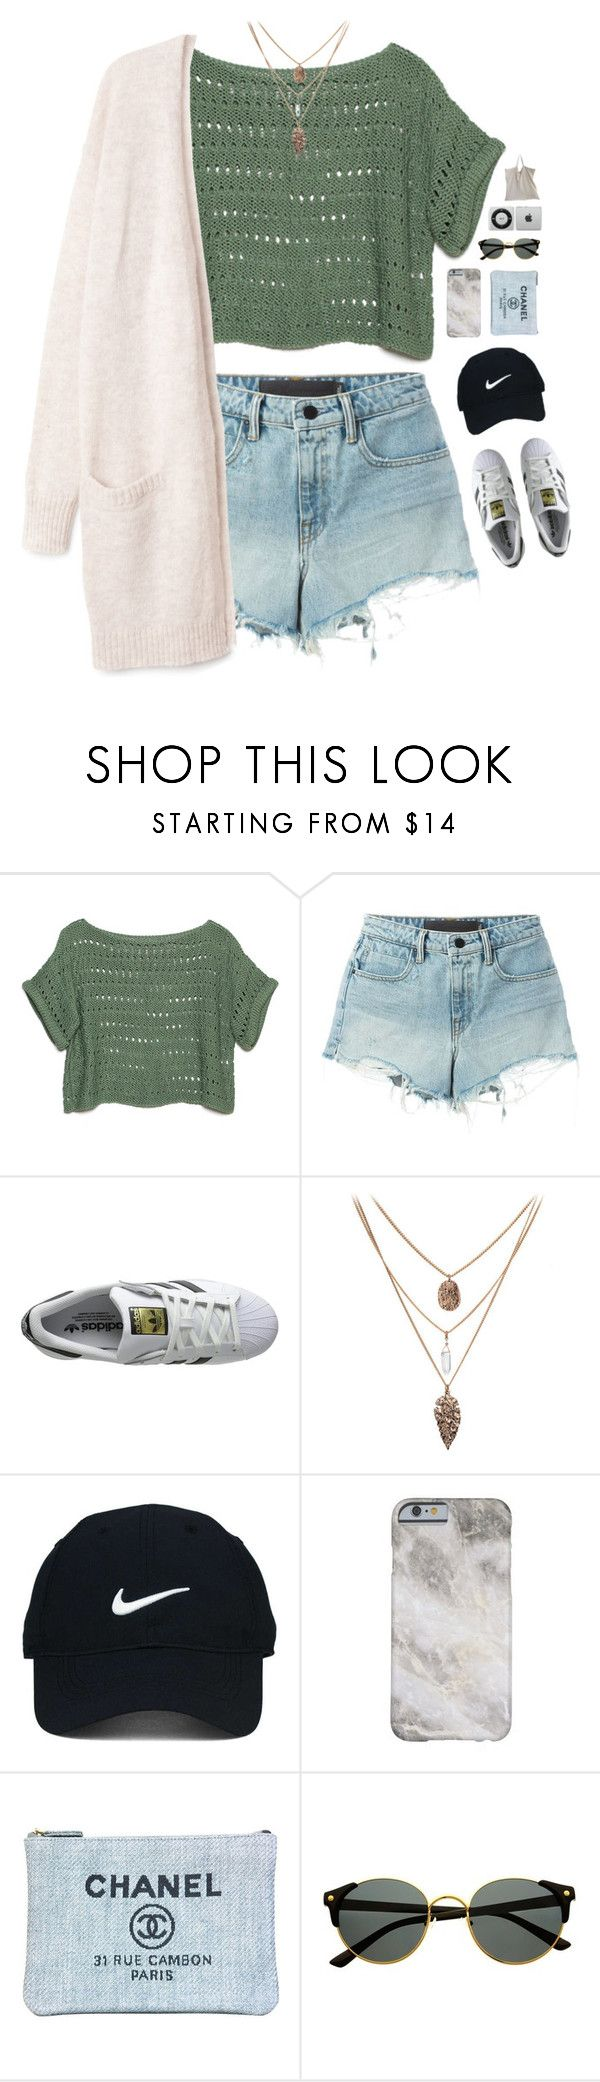 """SR'16"" by messyqueen on Polyvore featuring Alexander Wang, adidas Originals, Nike Golf and Chanel"